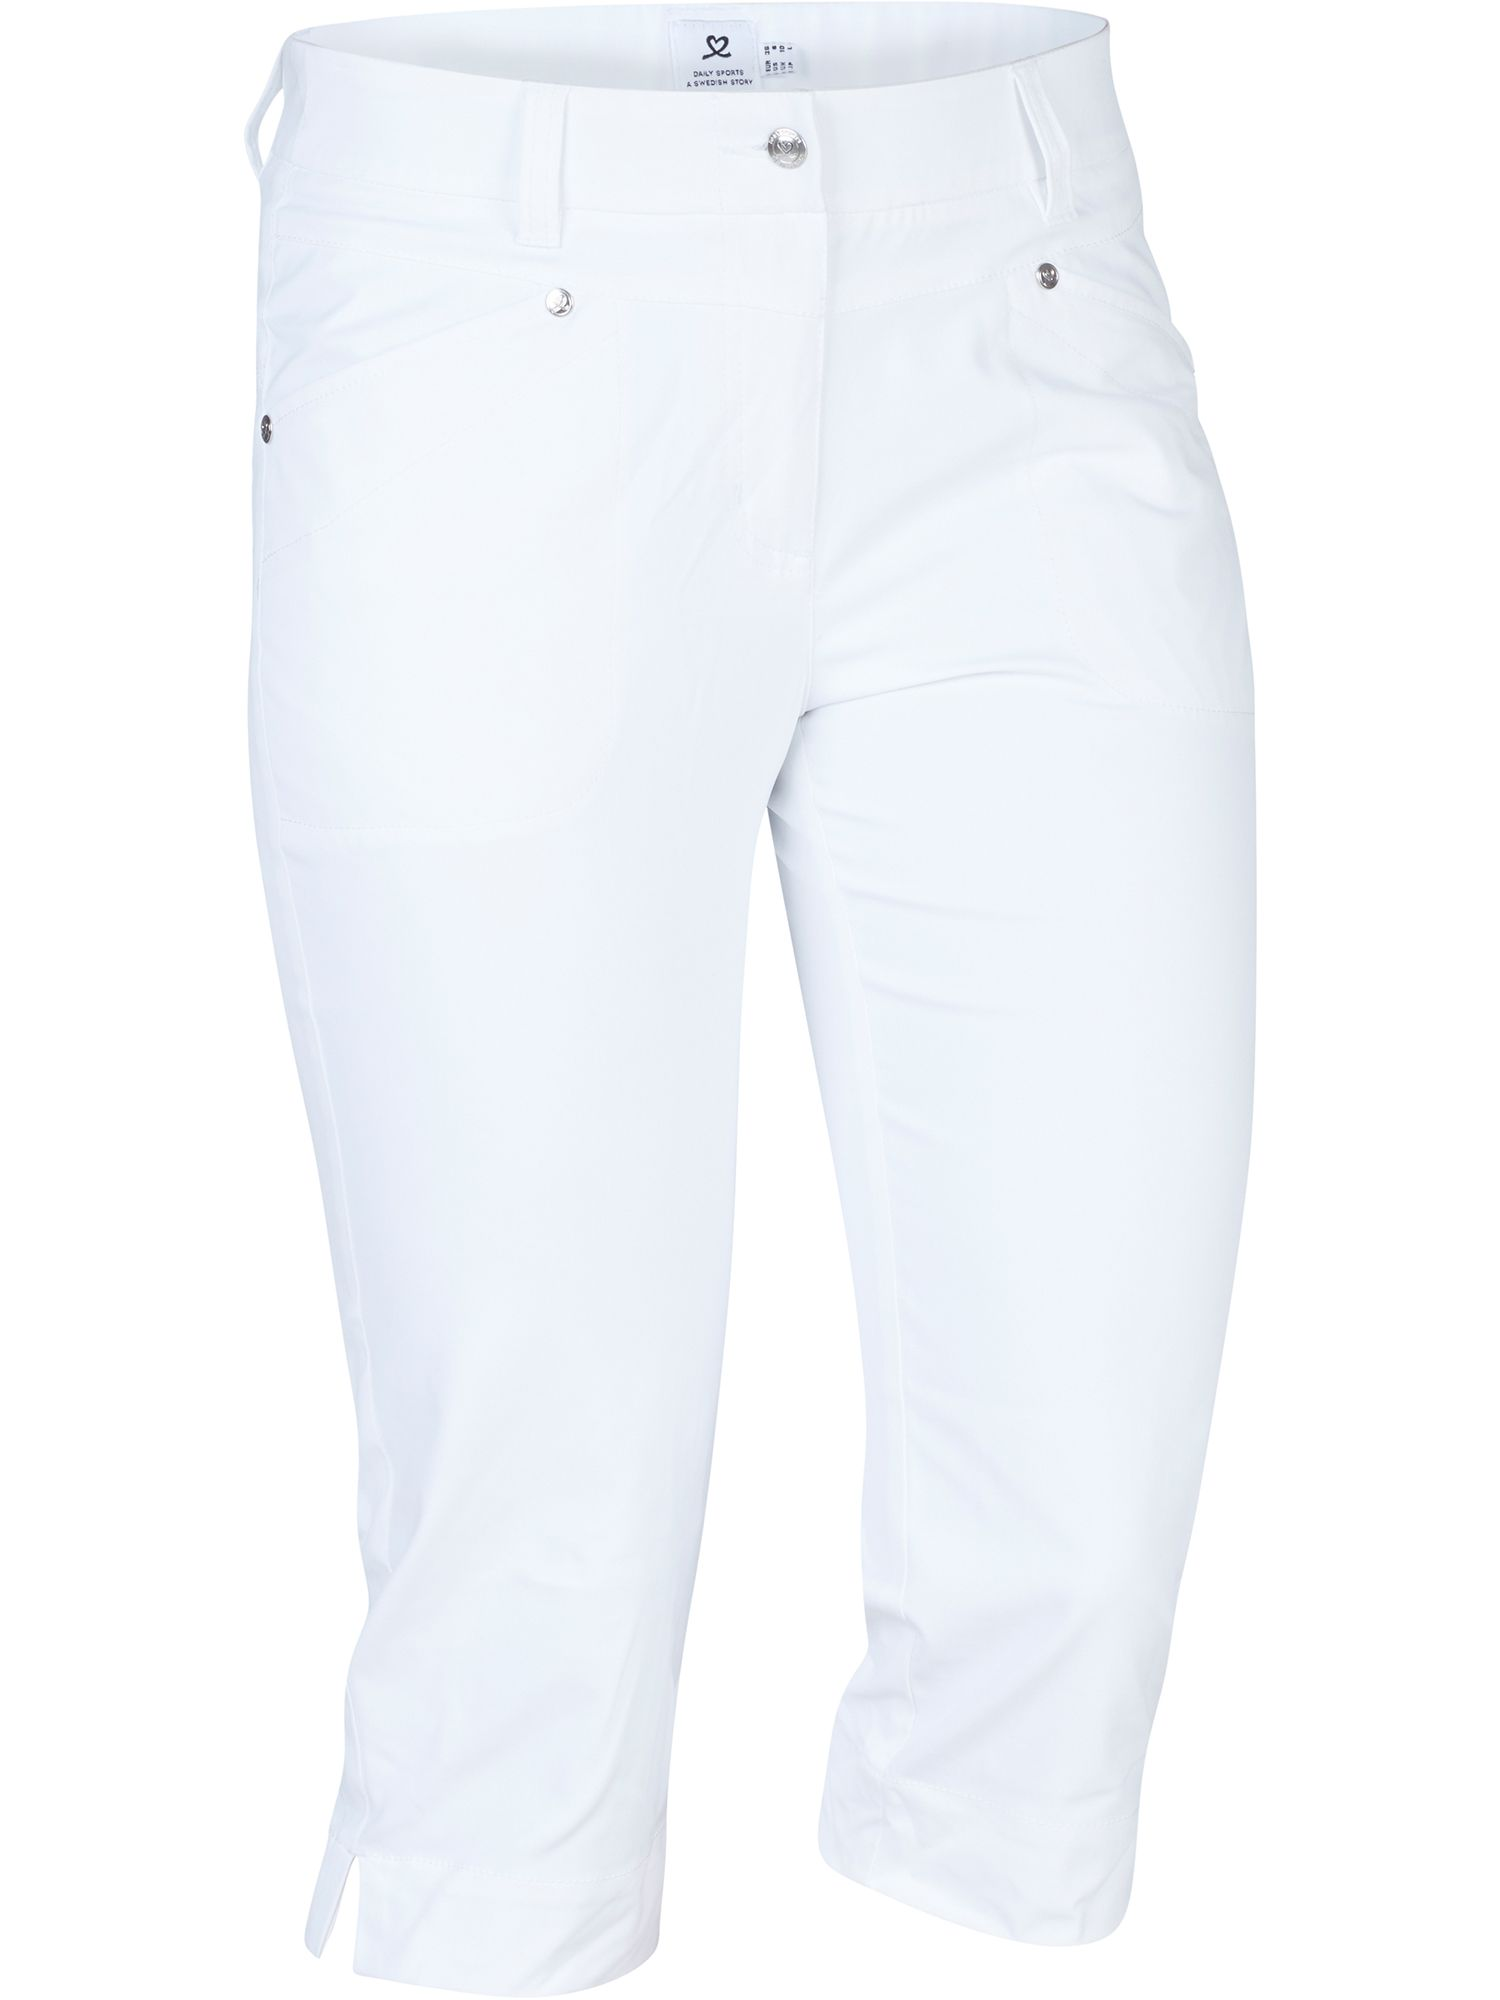 Daily Sports Lyric Capri, White